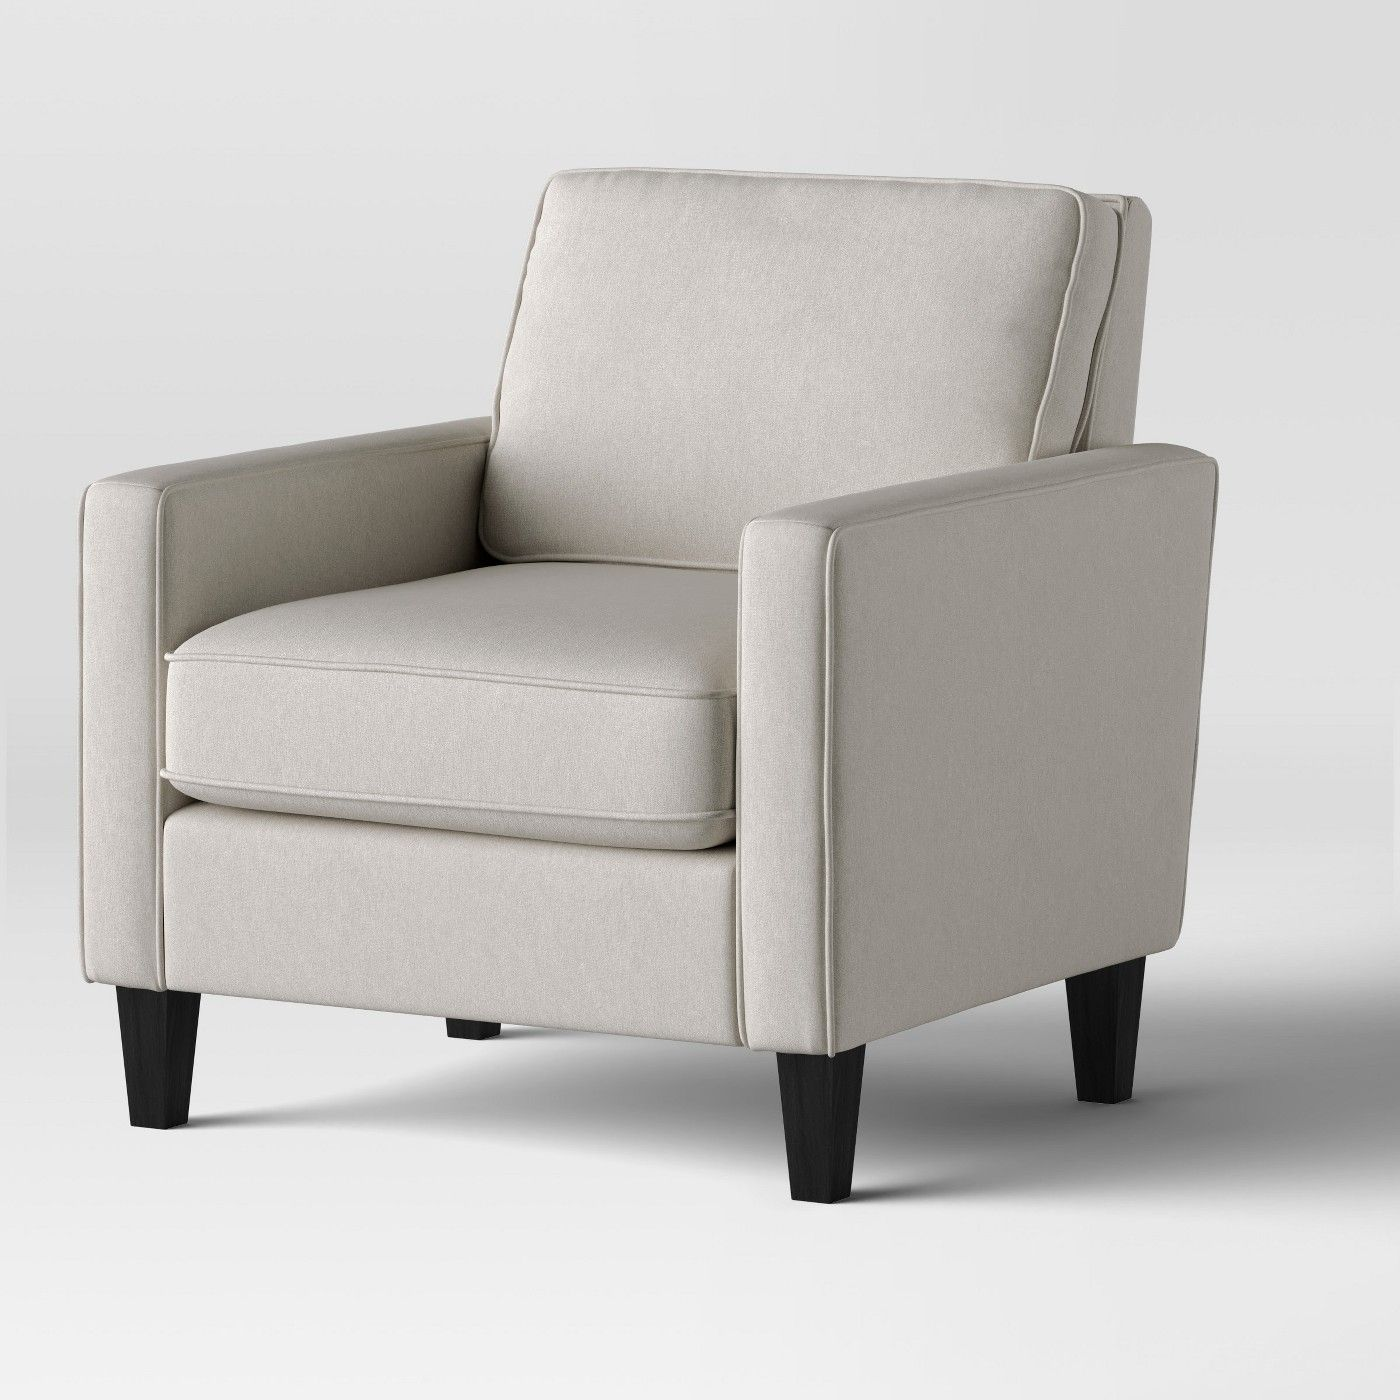 Elmhurst modern loose back cushion chair beige project 62 image 3 of 5